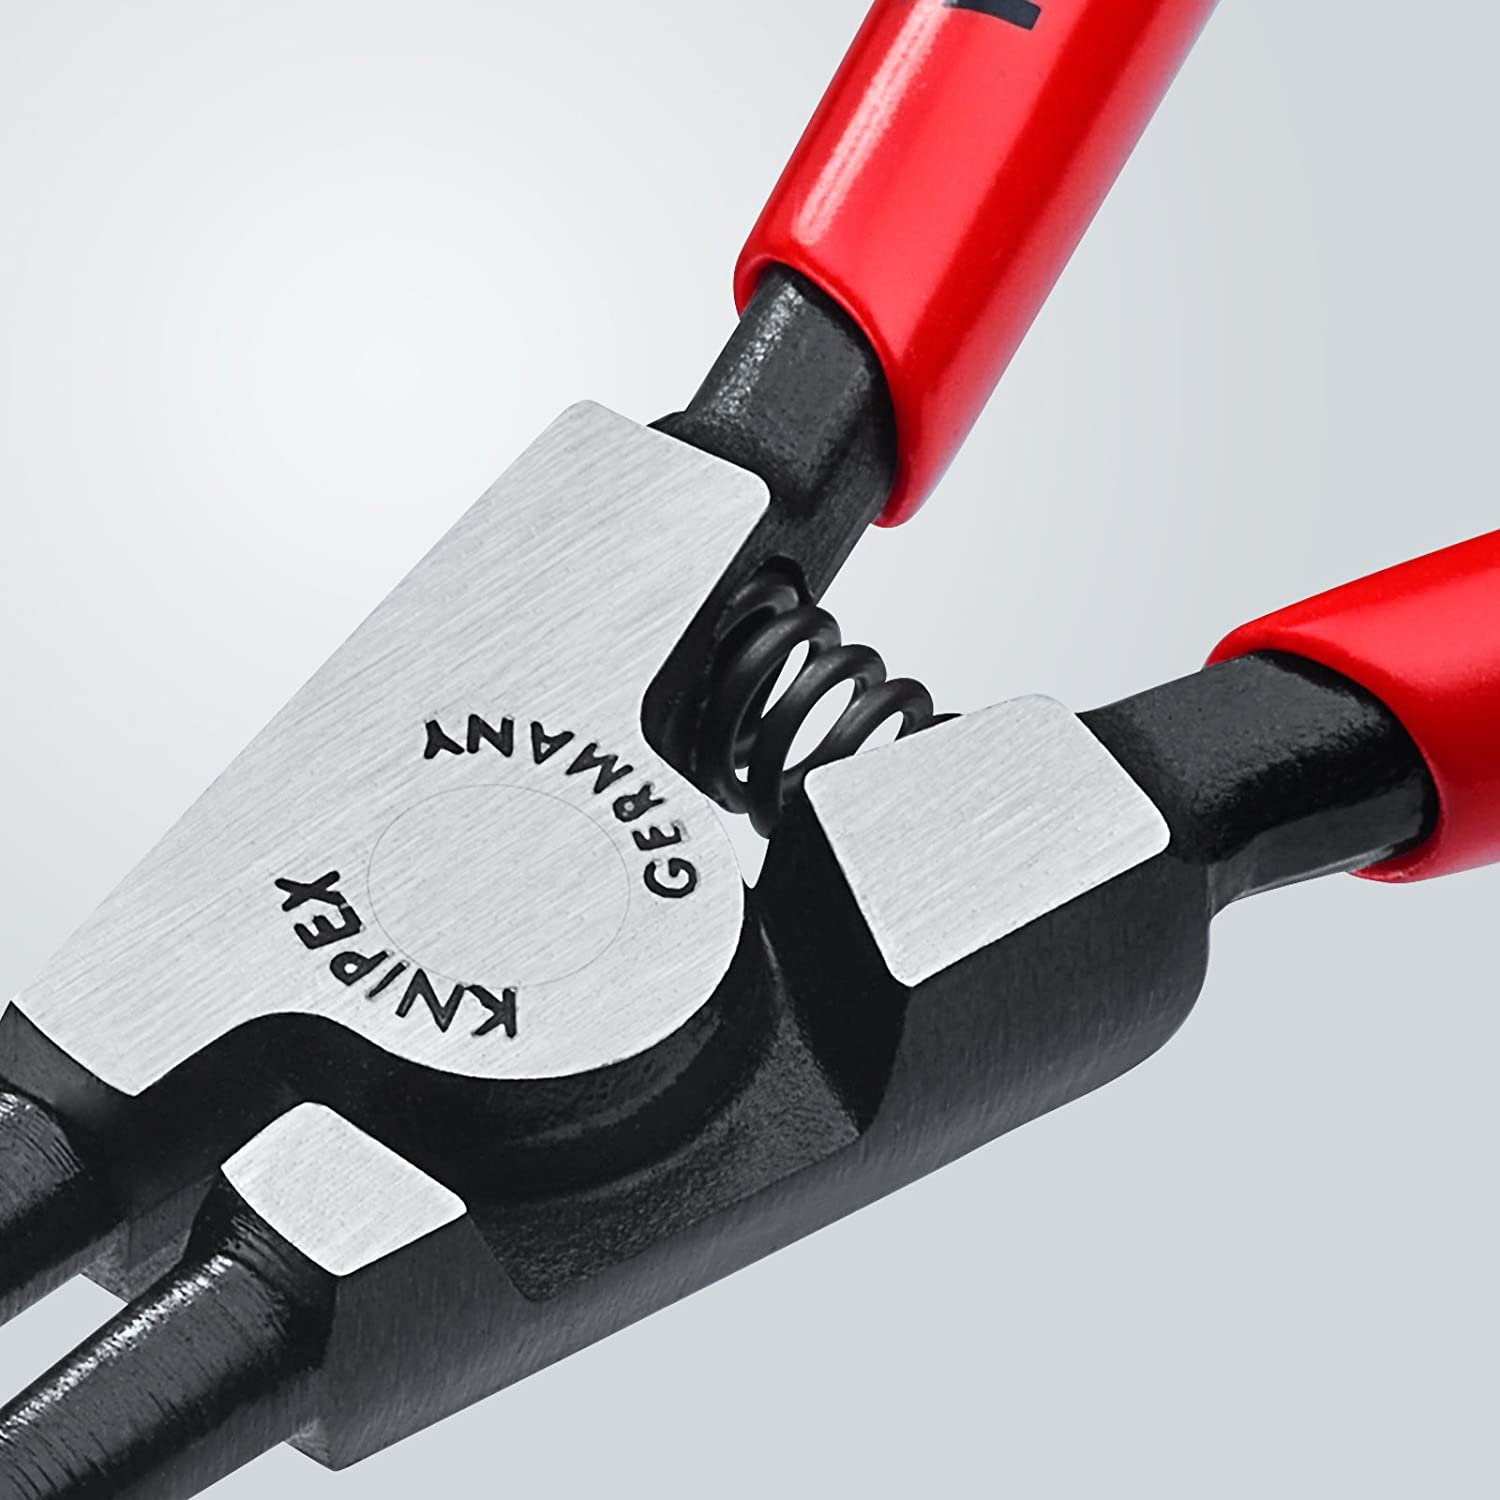 Multi-Colour Knipex 46 11 A1 Plier for External Circlips 10-25 mm